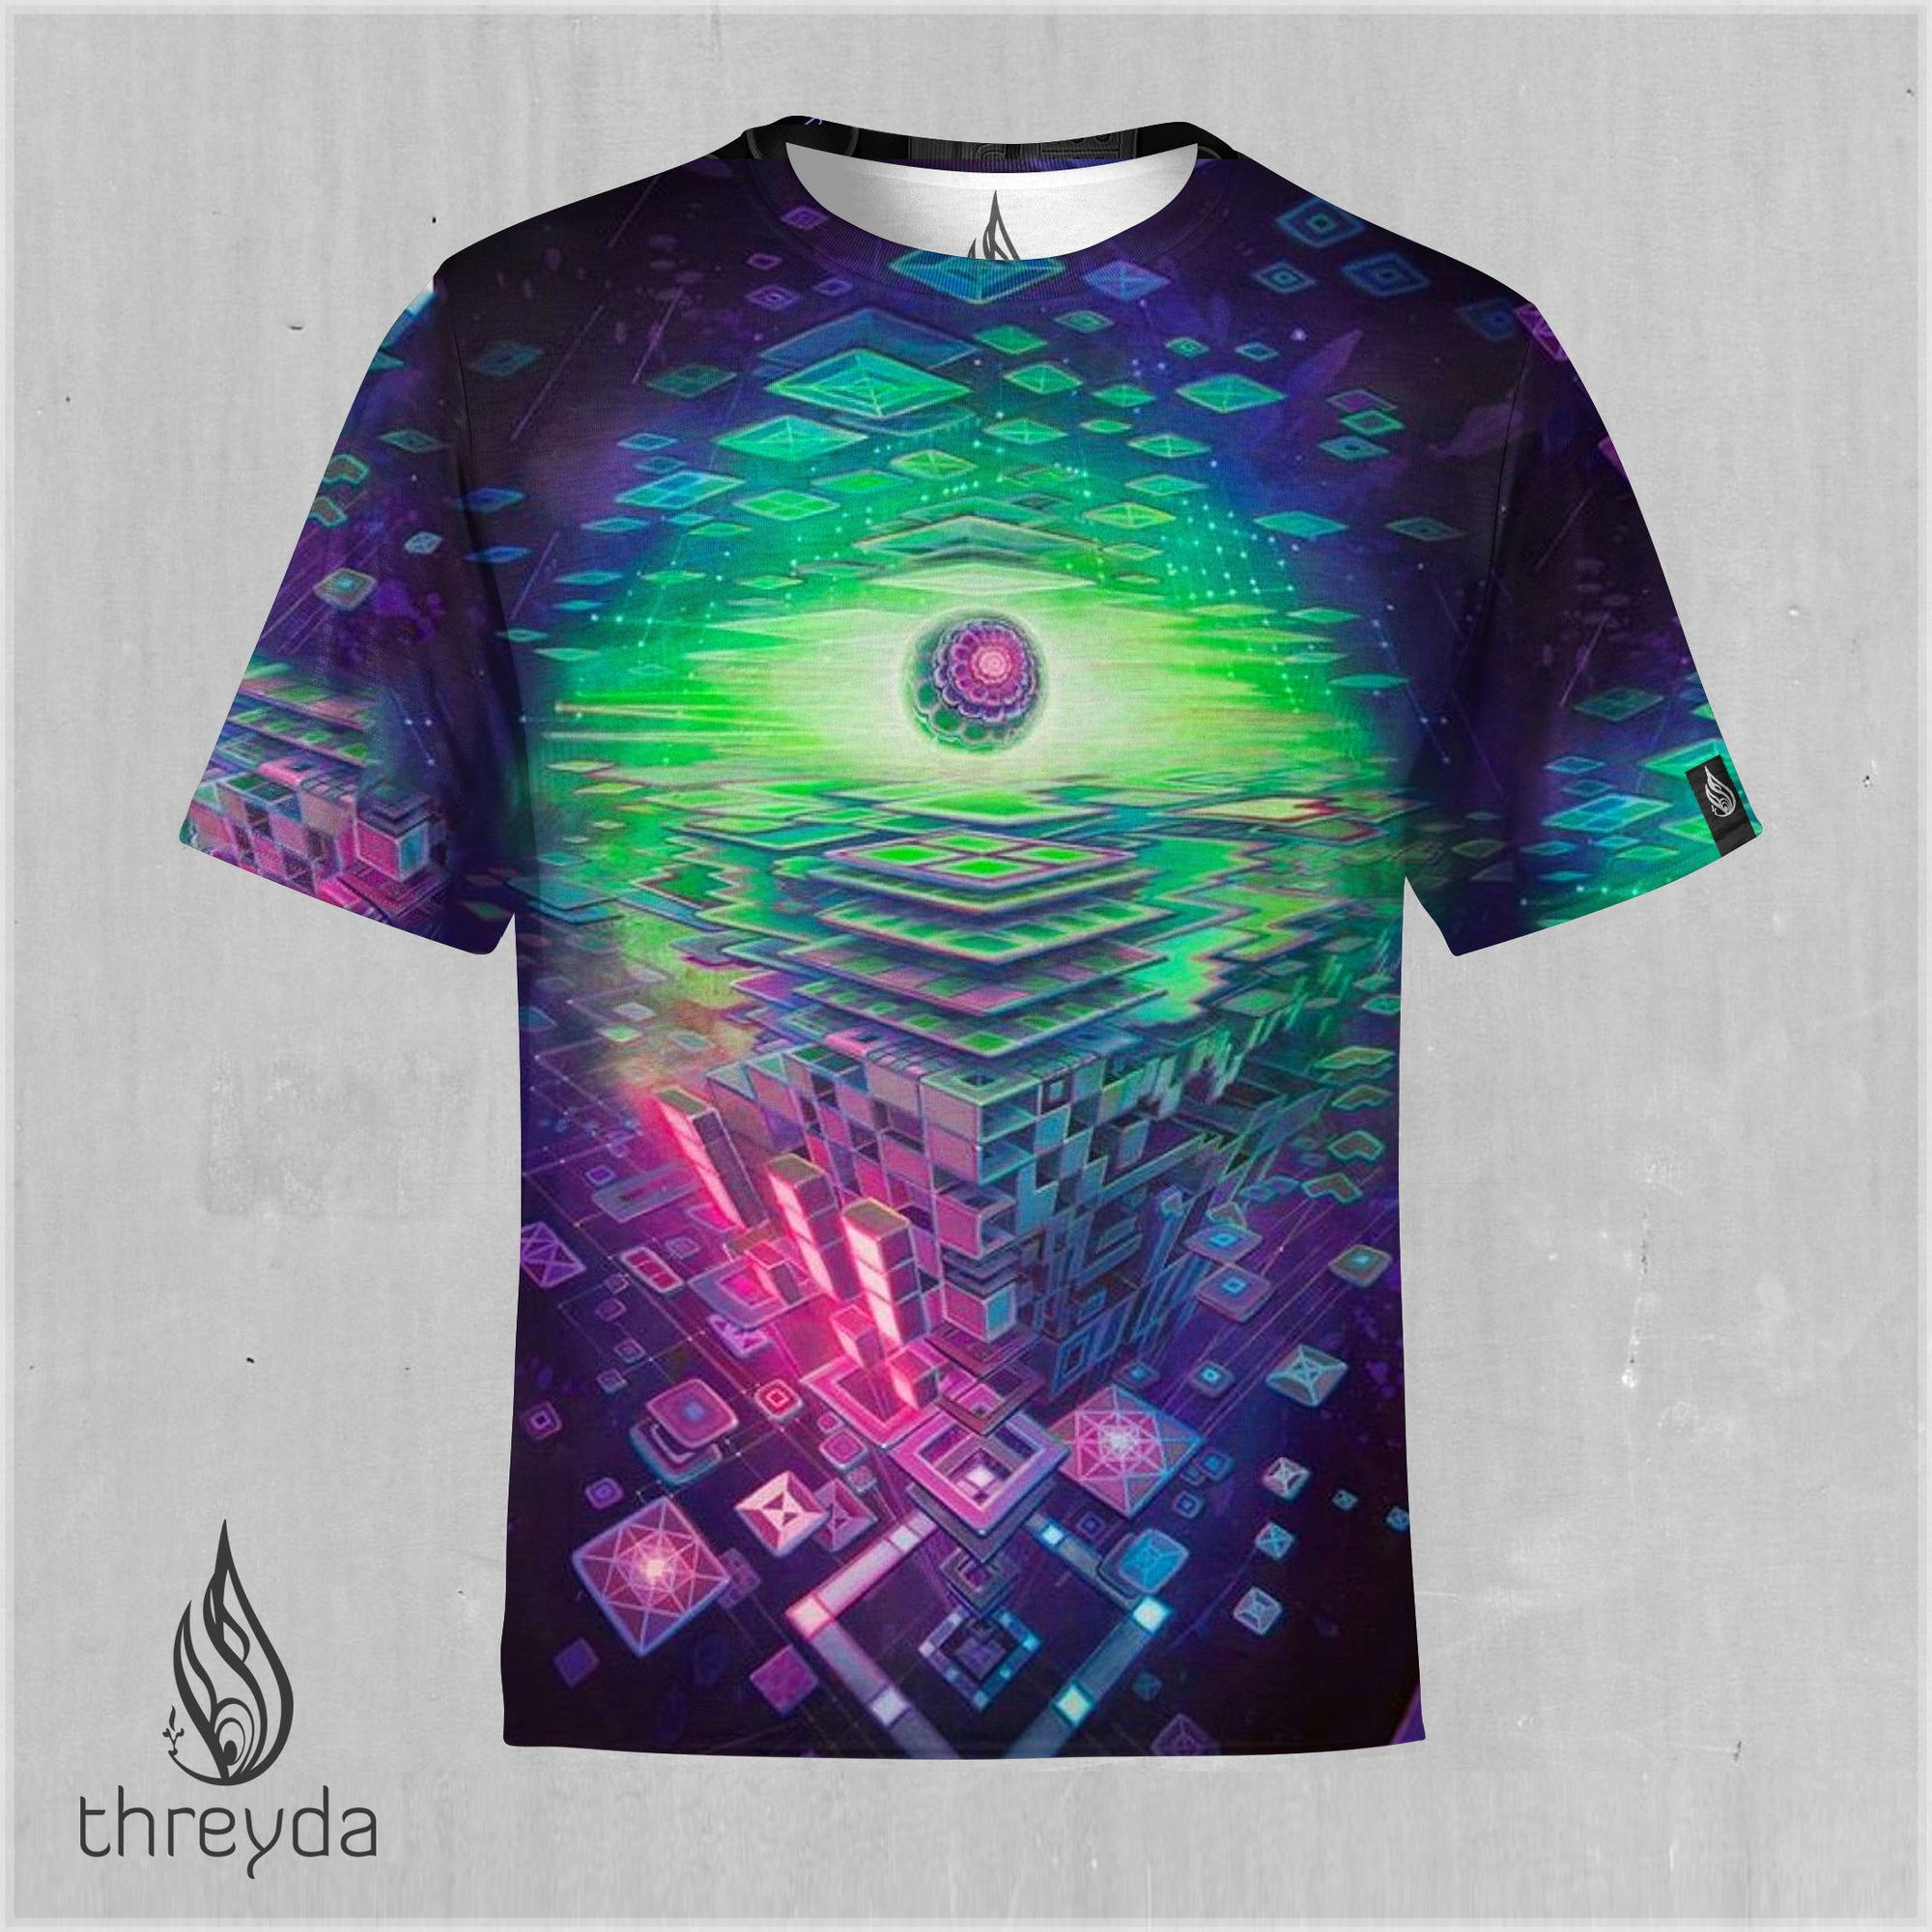 Limelight Sublimation Tee by Jake Amason